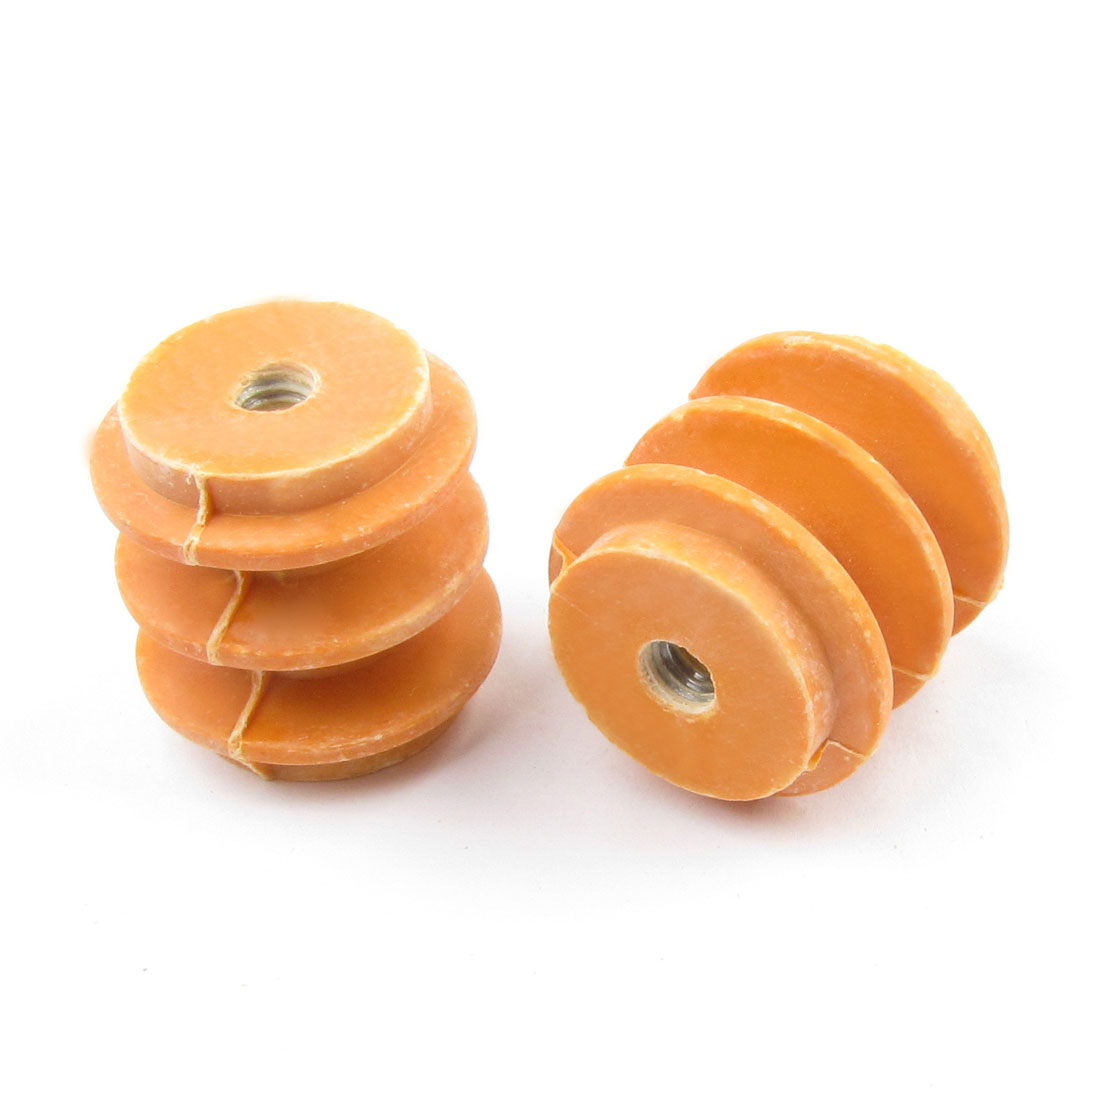 660V 5mm Thread 28mm Height Orange Busbar Enhanced Insulator Supporter 2pcs